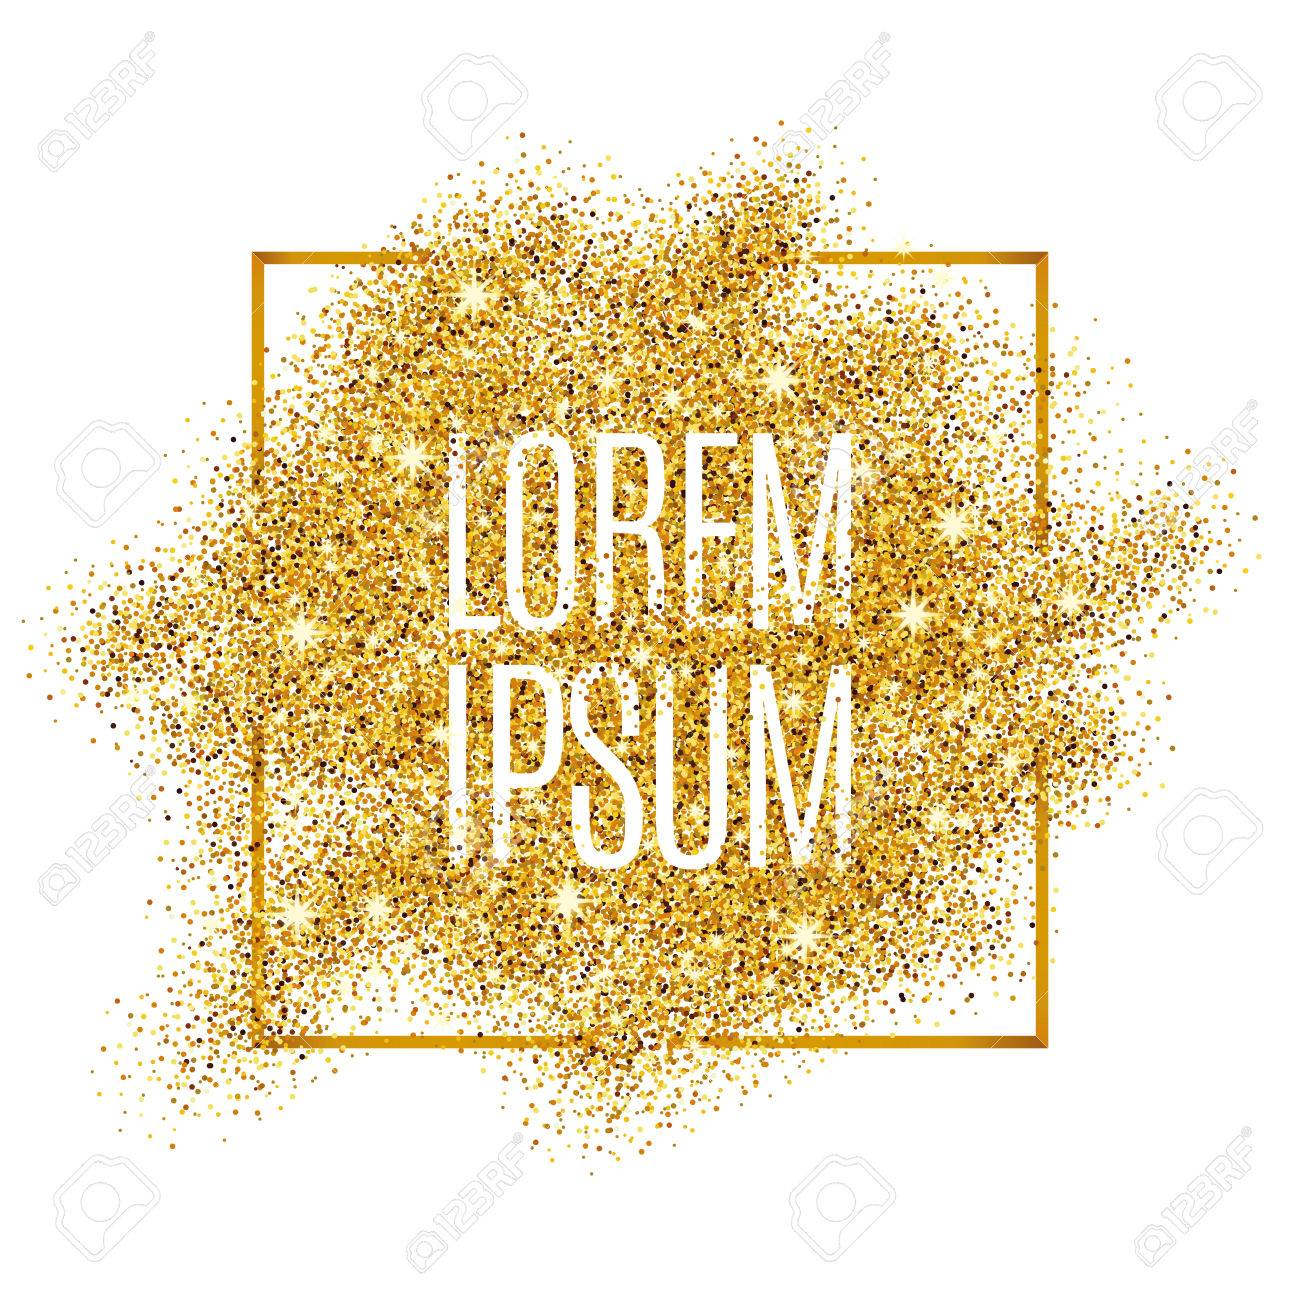 Gold background for poster, shopping, for sale sign, discount, marketing, selling, web, header. Abstract golden background for text, type, quote. Gold blur background - 52579337